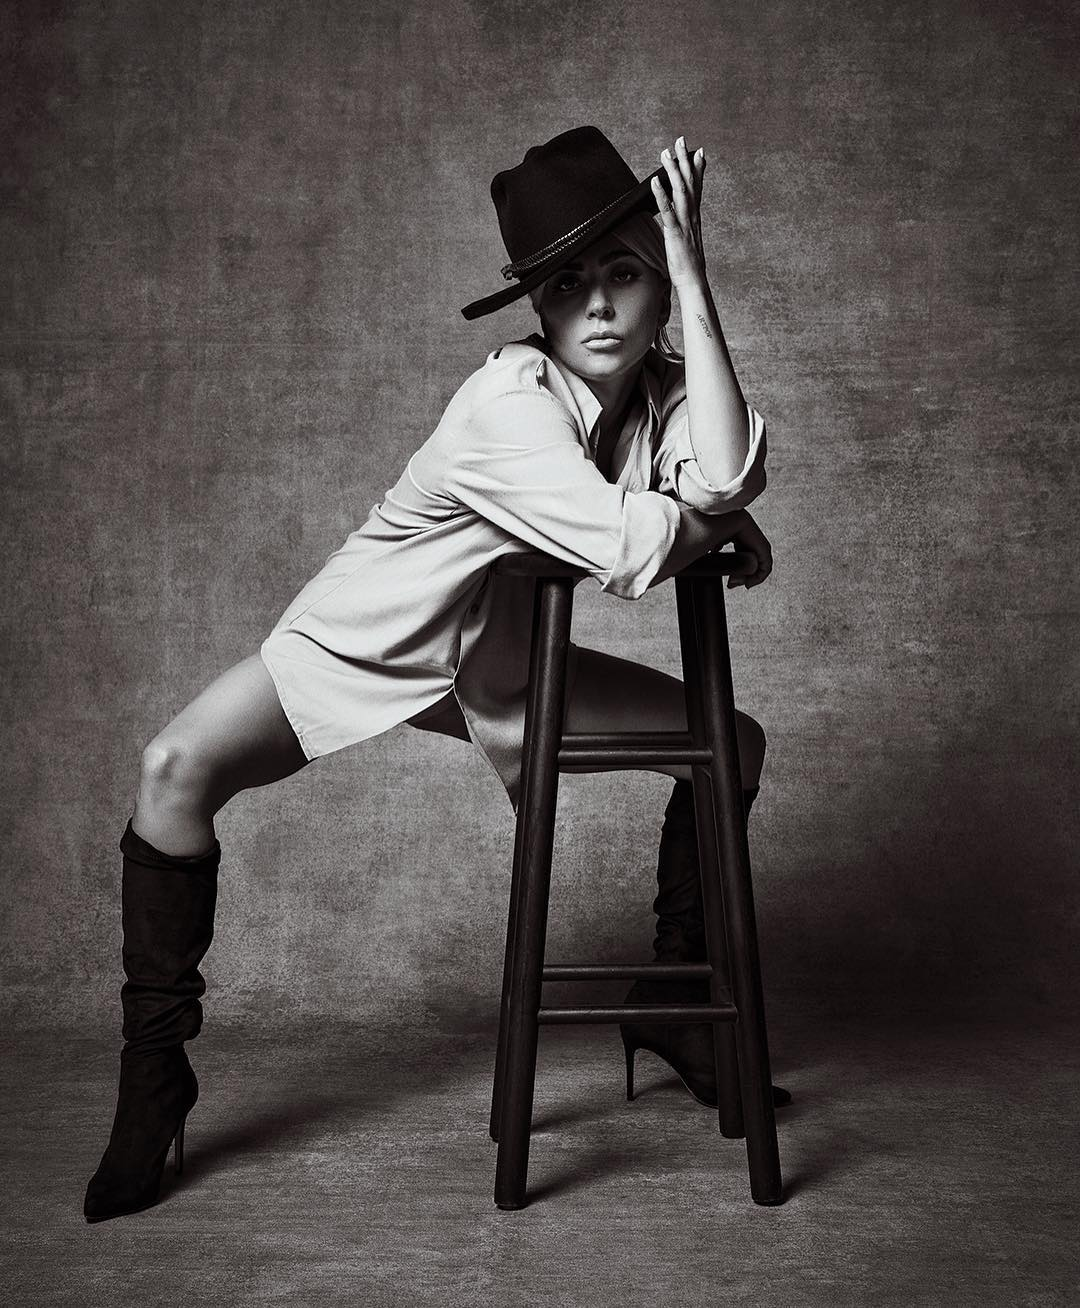 Lady Gaga Wearing White Shirt And Otk Boots In Variety 2020